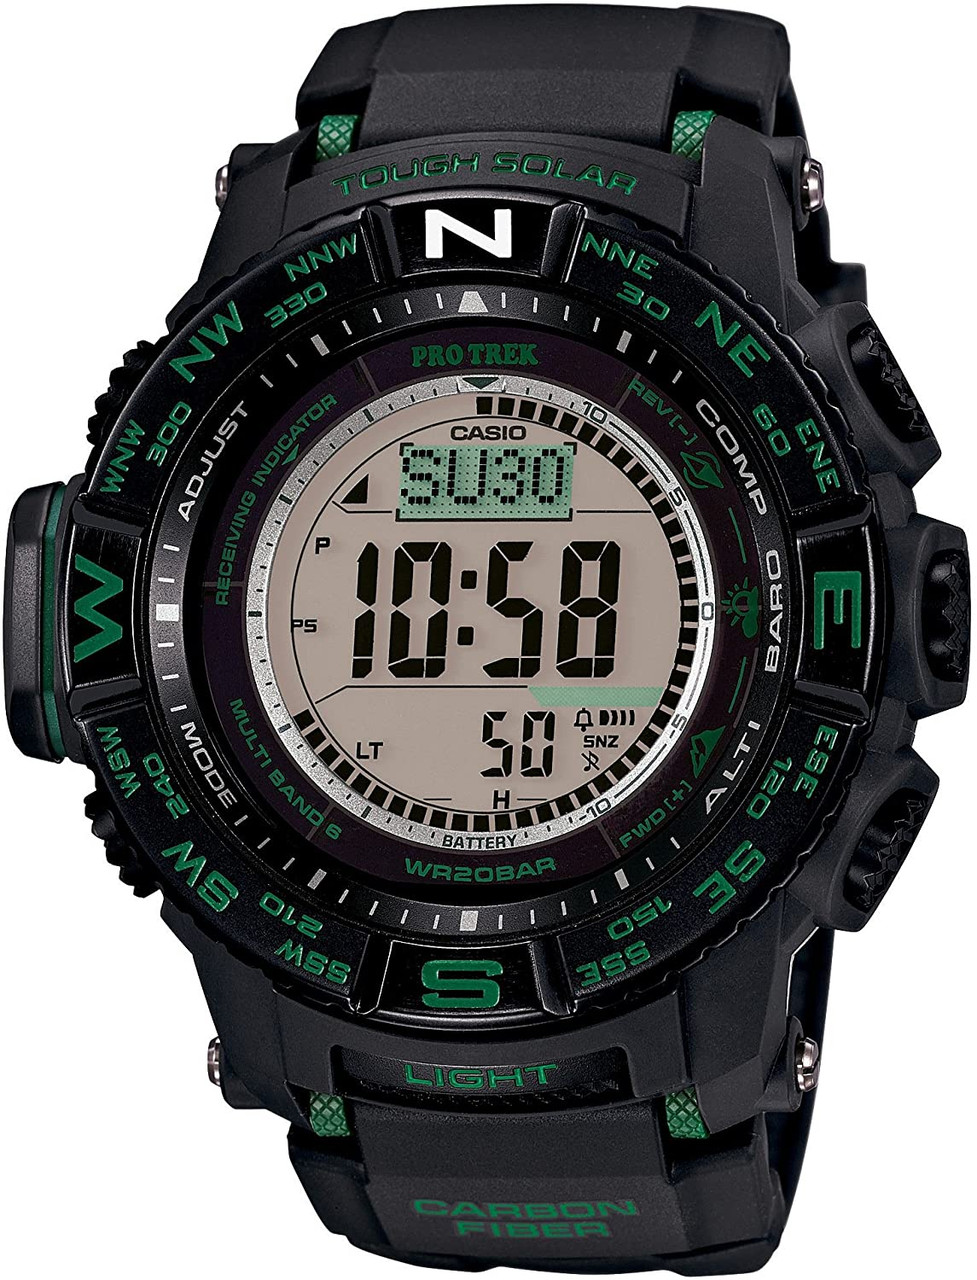 Casio Protrek PRW-S3500-1 Triple Sensor Version 3